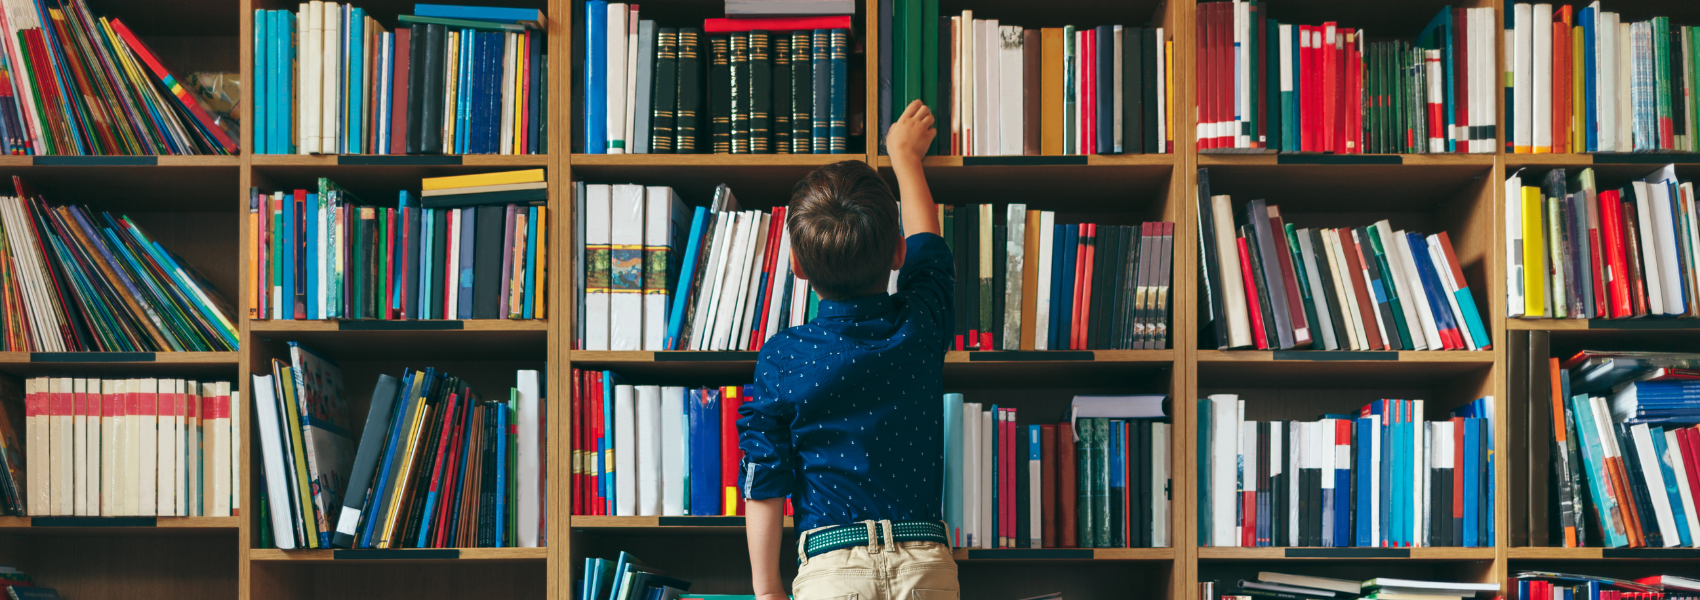 Boy searching for a library book